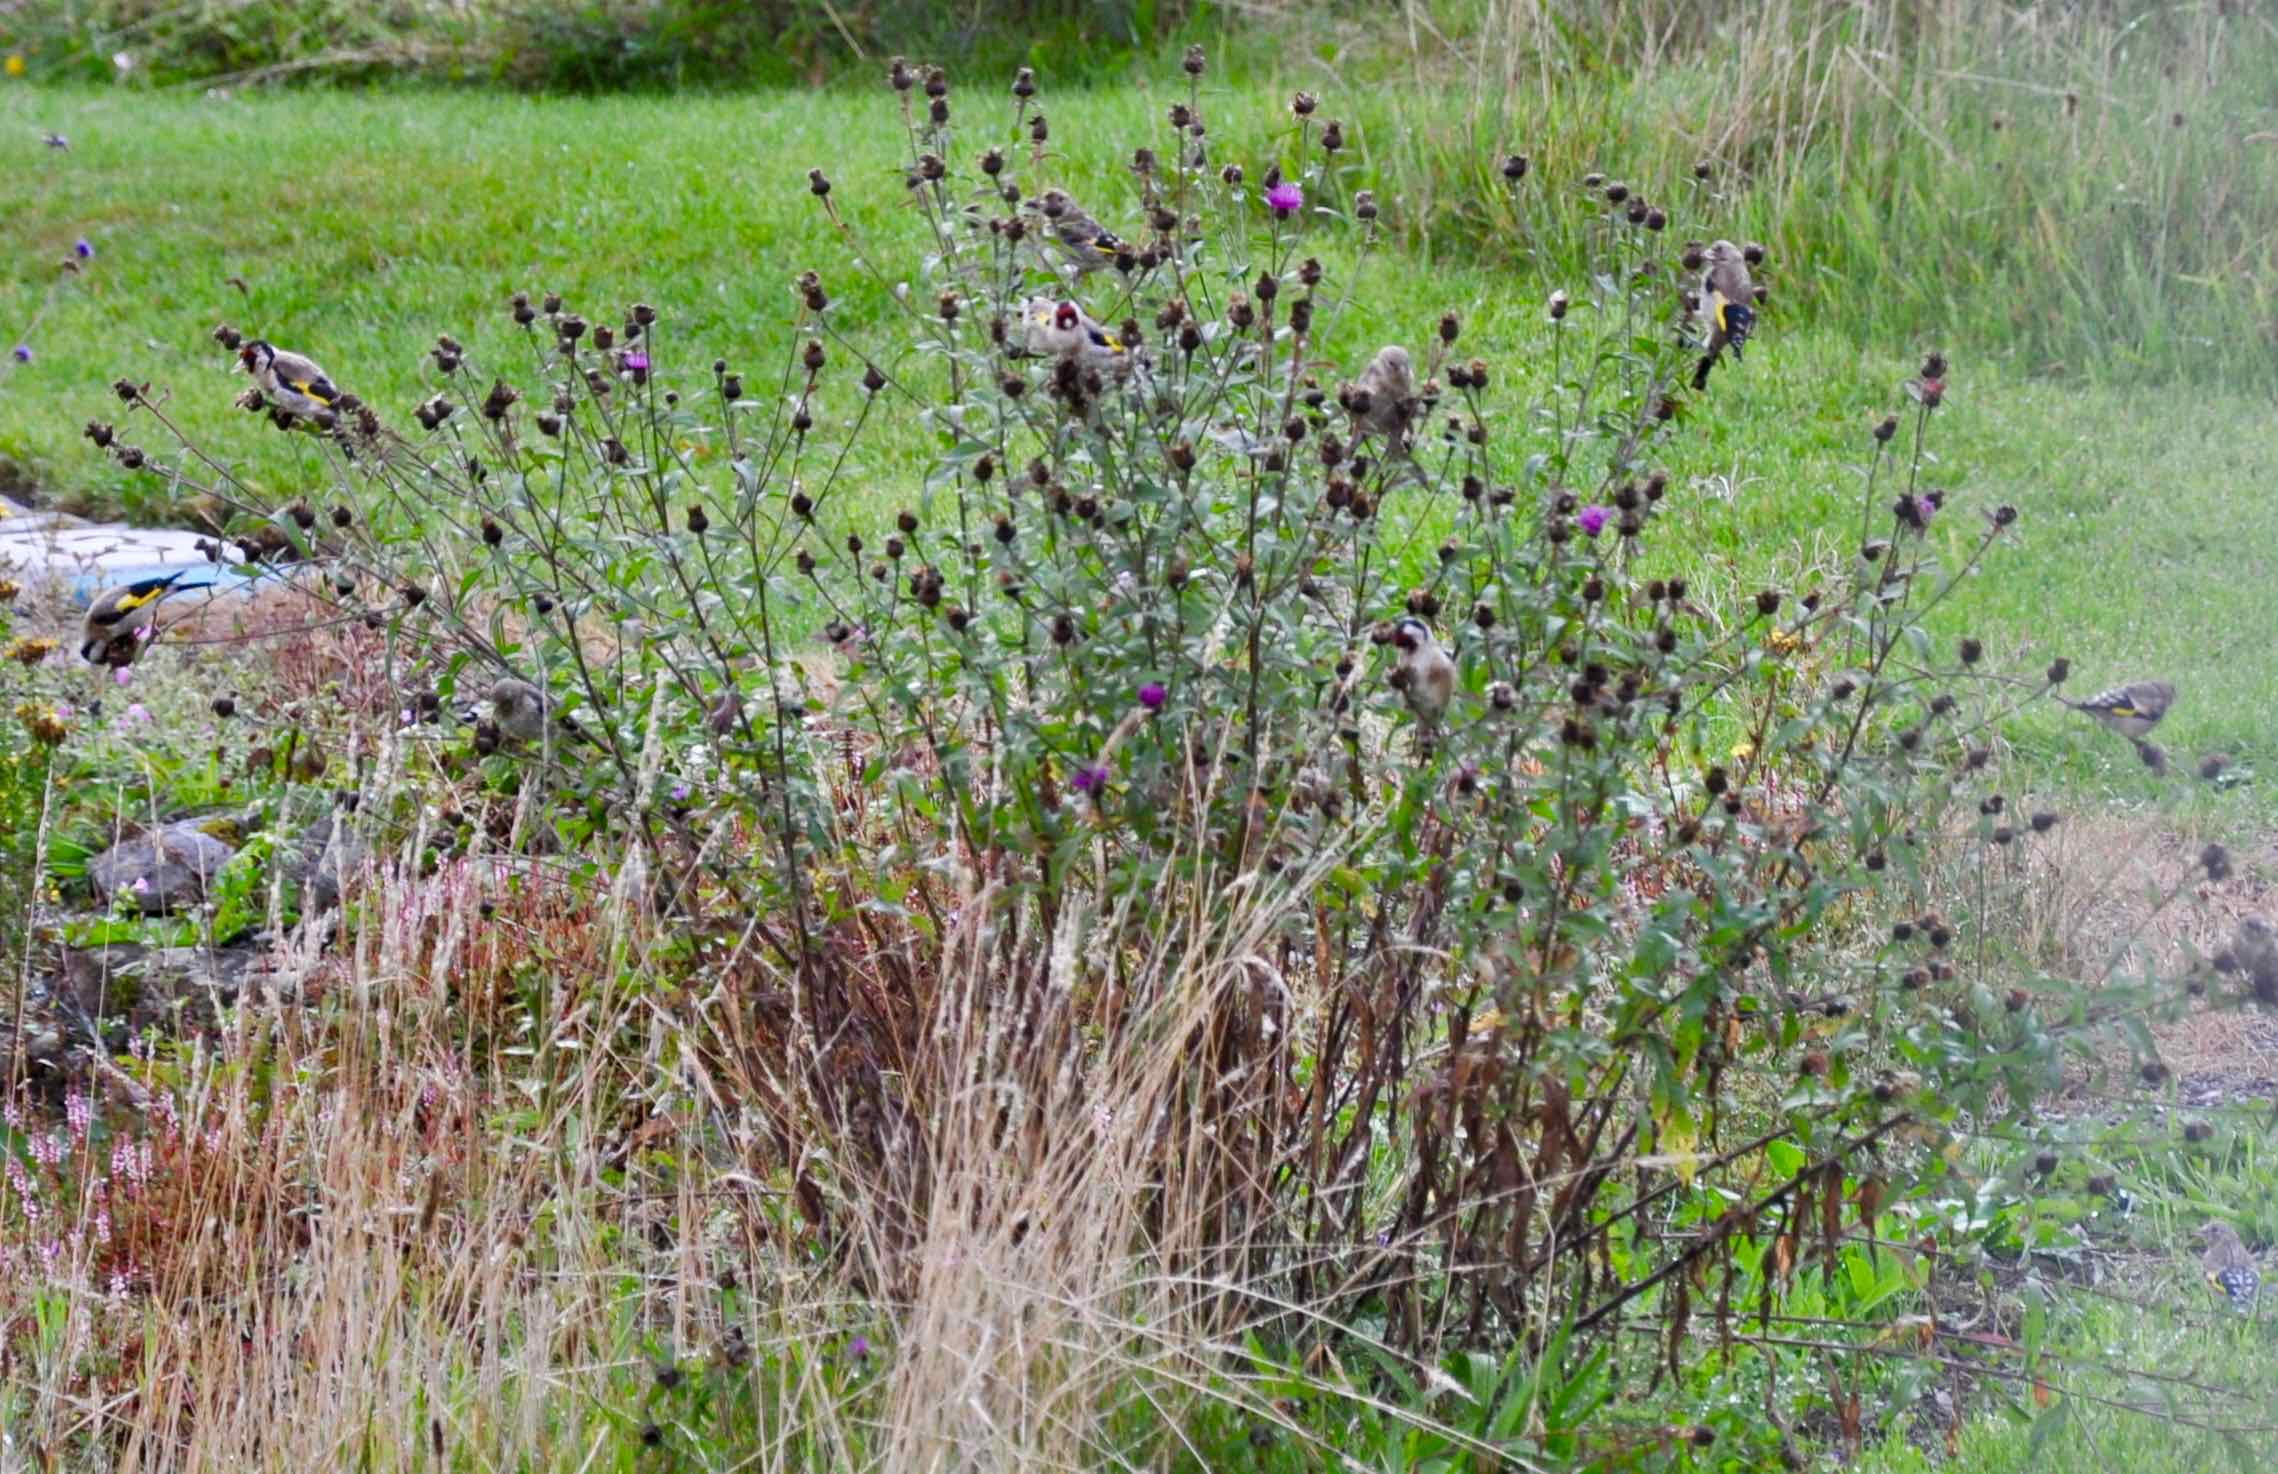 Goldfinches on Knapweed.jpg